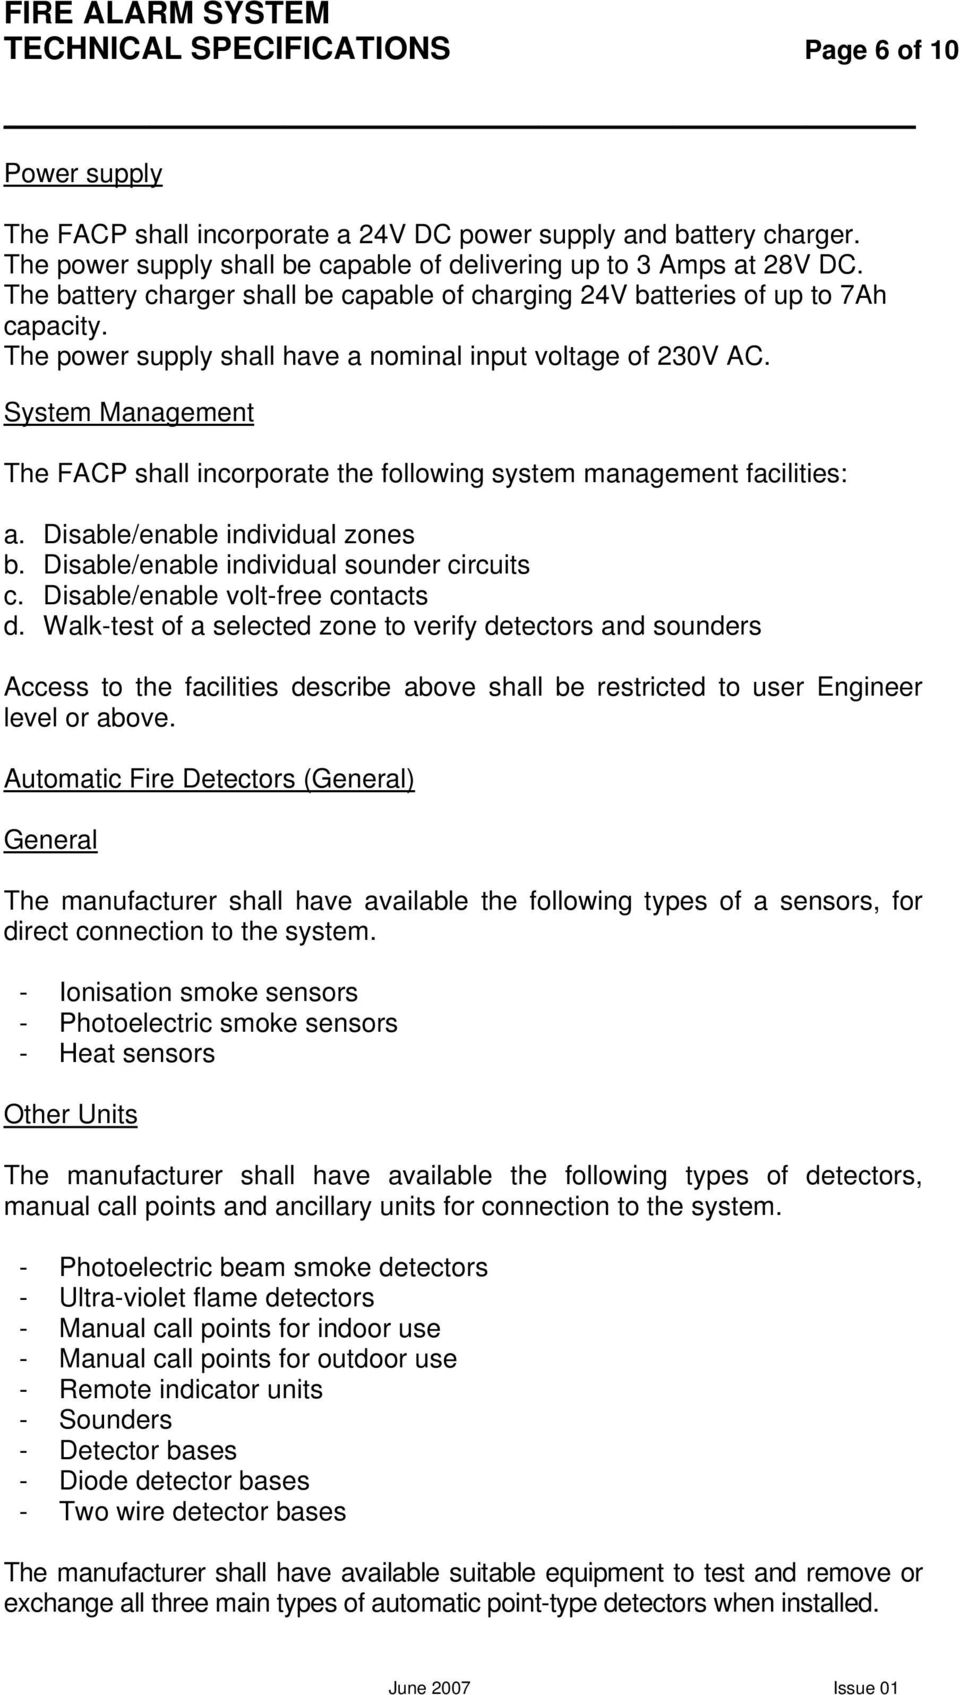 System Management The FACP shall incorporate the following system management facilities: a. Disable/enable individual zones b. Disable/enable individual sounder circuits c.